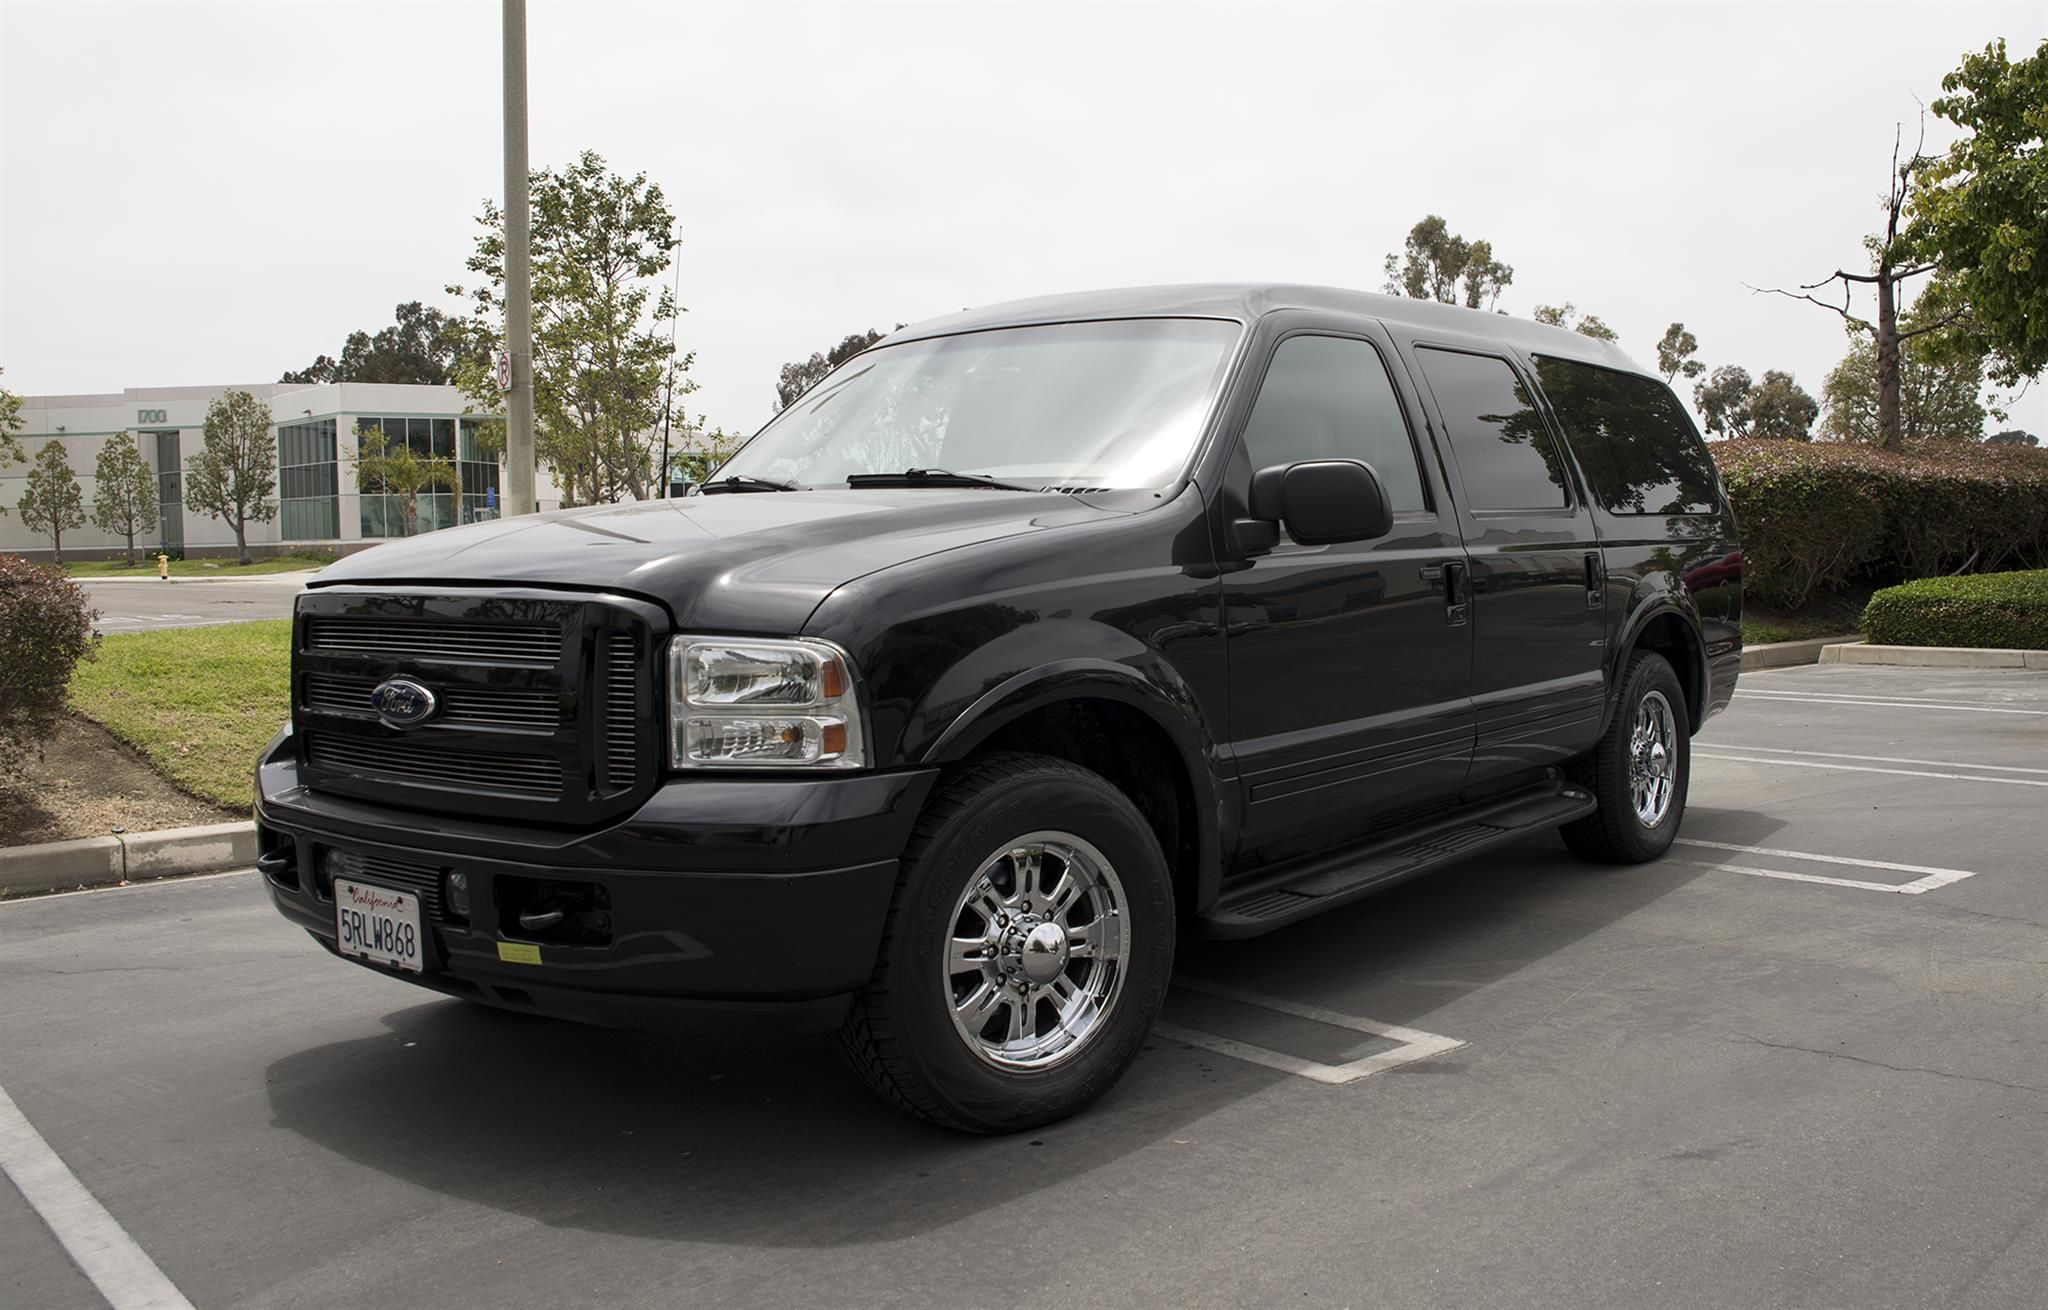 2005 Ford Excursion By Becker Automotive Design In Oxnard Ca